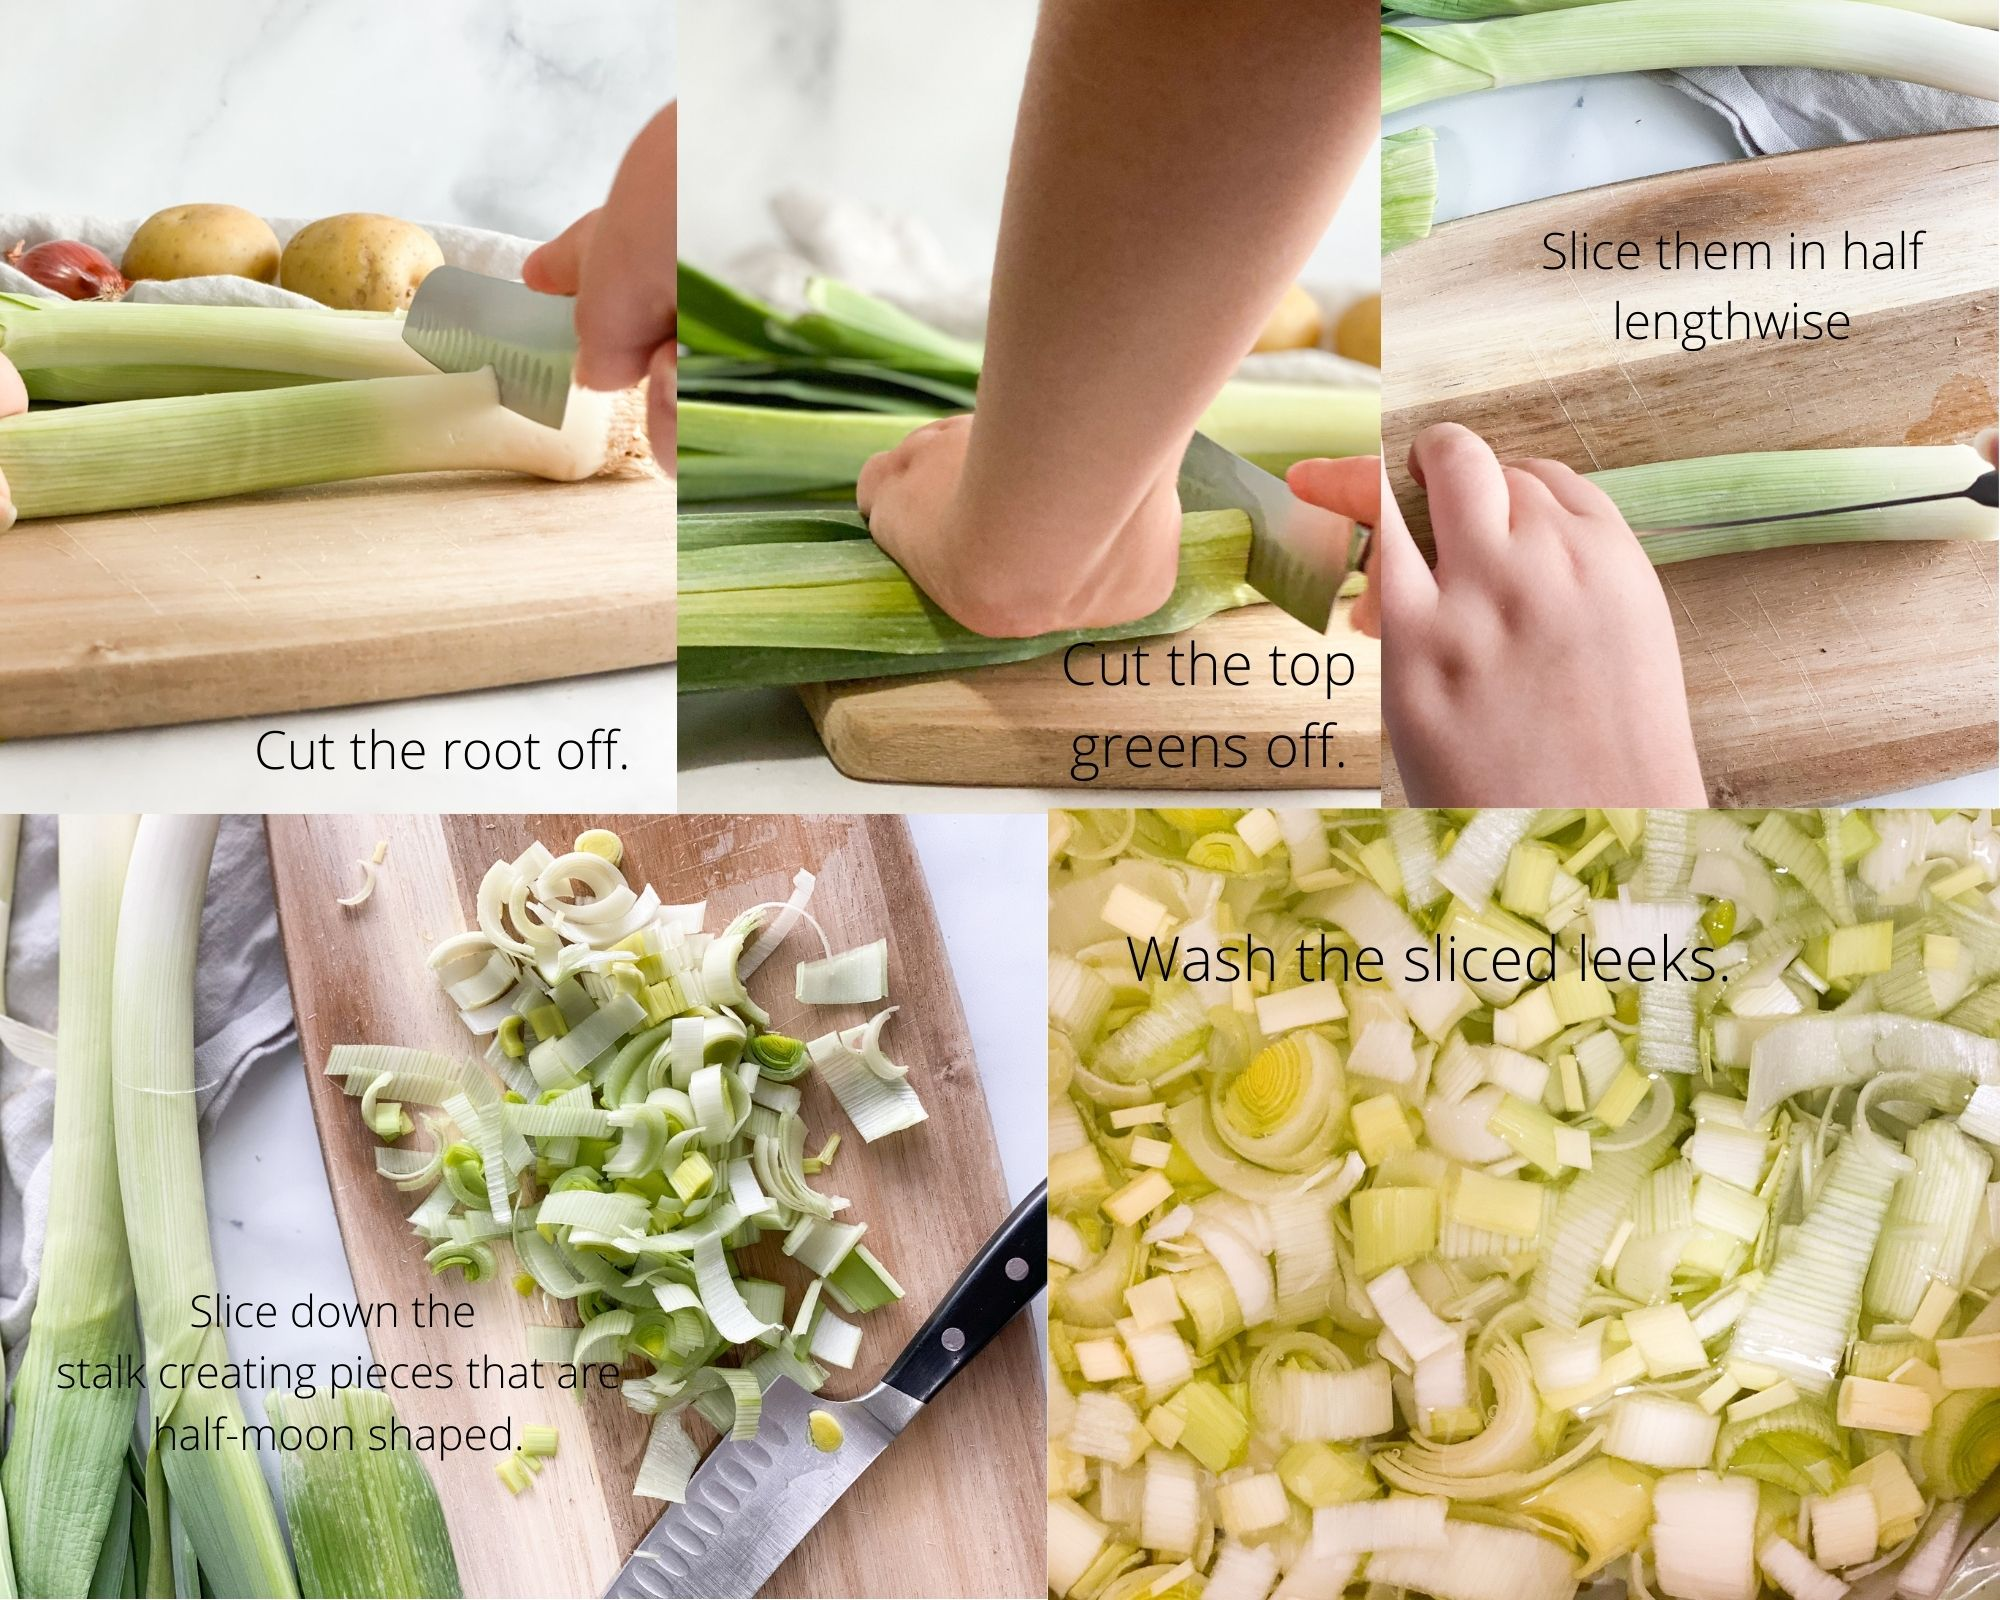 Steps to cut and wash leeks. Cut the white root off.  Cut the upper greens off. Slice the stalk in half lengthwise. Cut the stalks into half moon shaped pieces. Wash to release any trapped dirt.